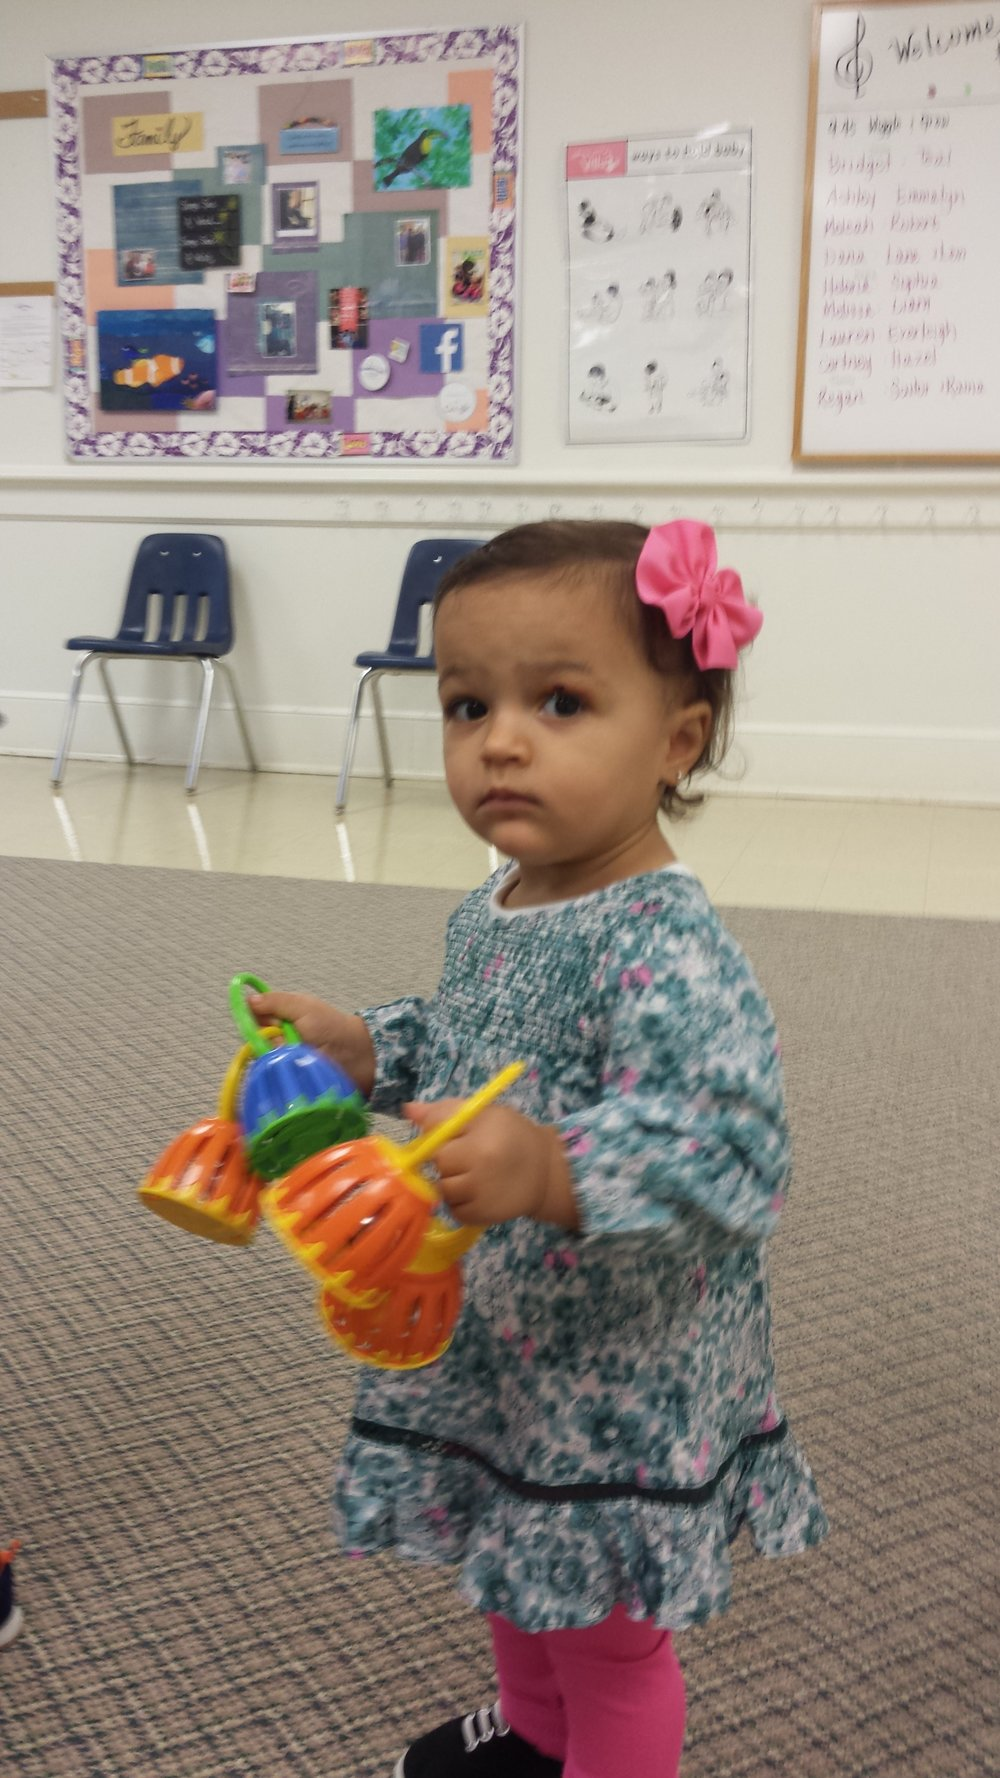 Sofia Martinez, a one year old student, is enjoying Kindermusik@school with Mrs. Gina.